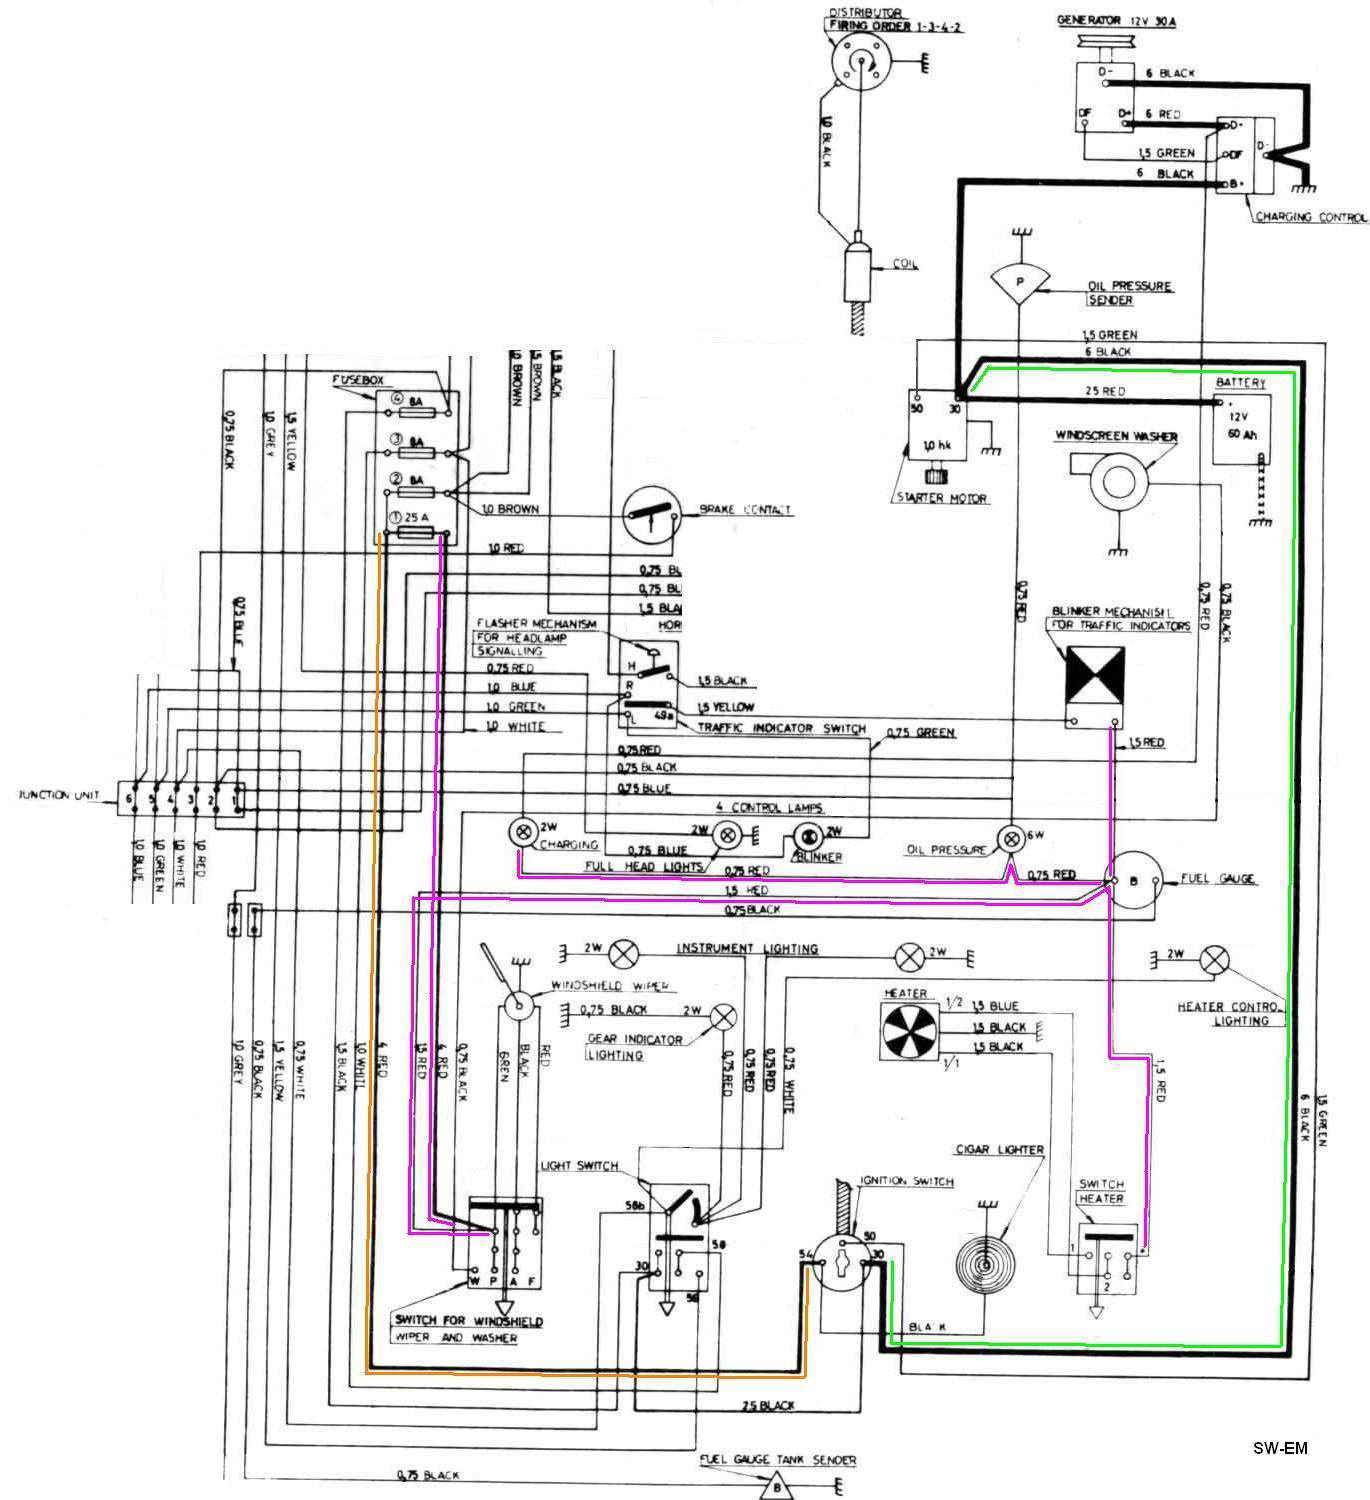 wiring diagram volvo amazon schematics wiring diagrams u2022 rh parntesis  co Heater Wiring Diagram Volvo Fuel